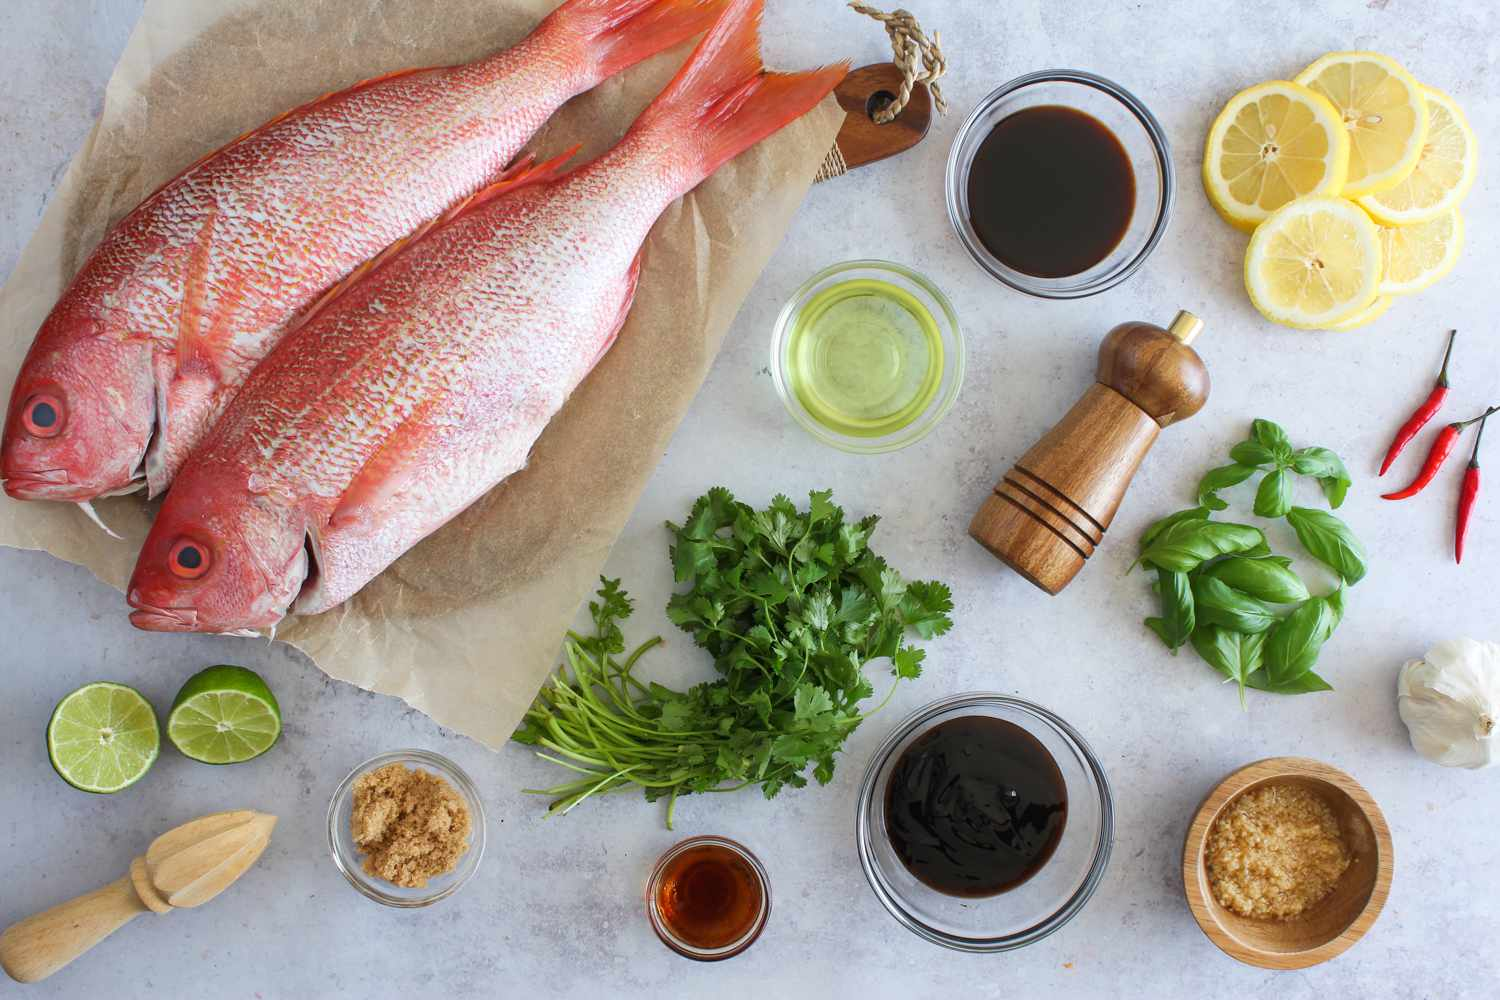 Ingredients for baked whole fish in garlic-chili sauce